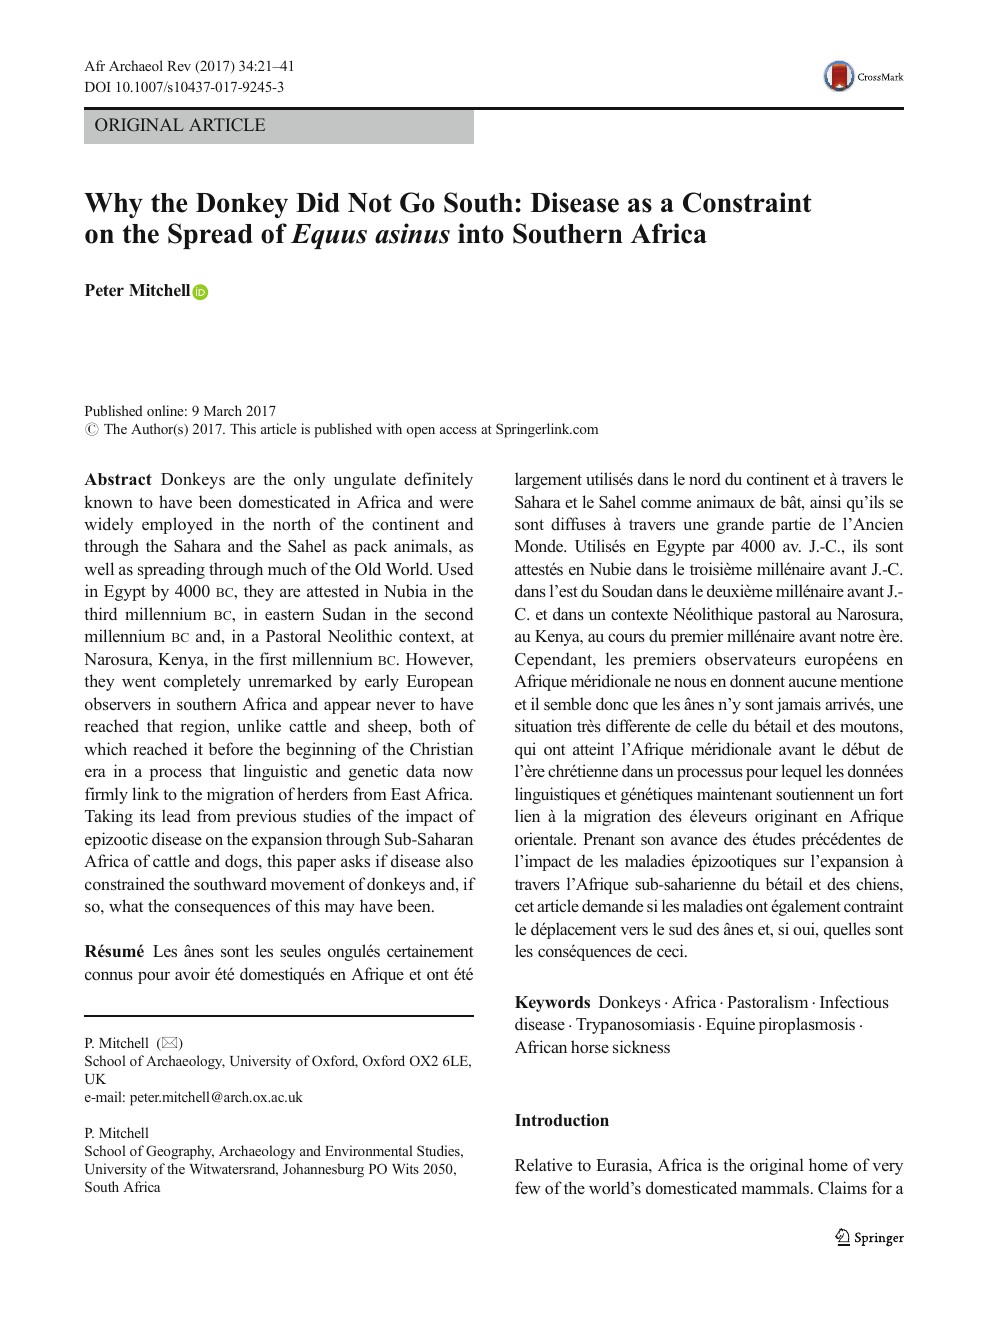 Why the Donkey Did Not Go South: Disease as a Constraint on